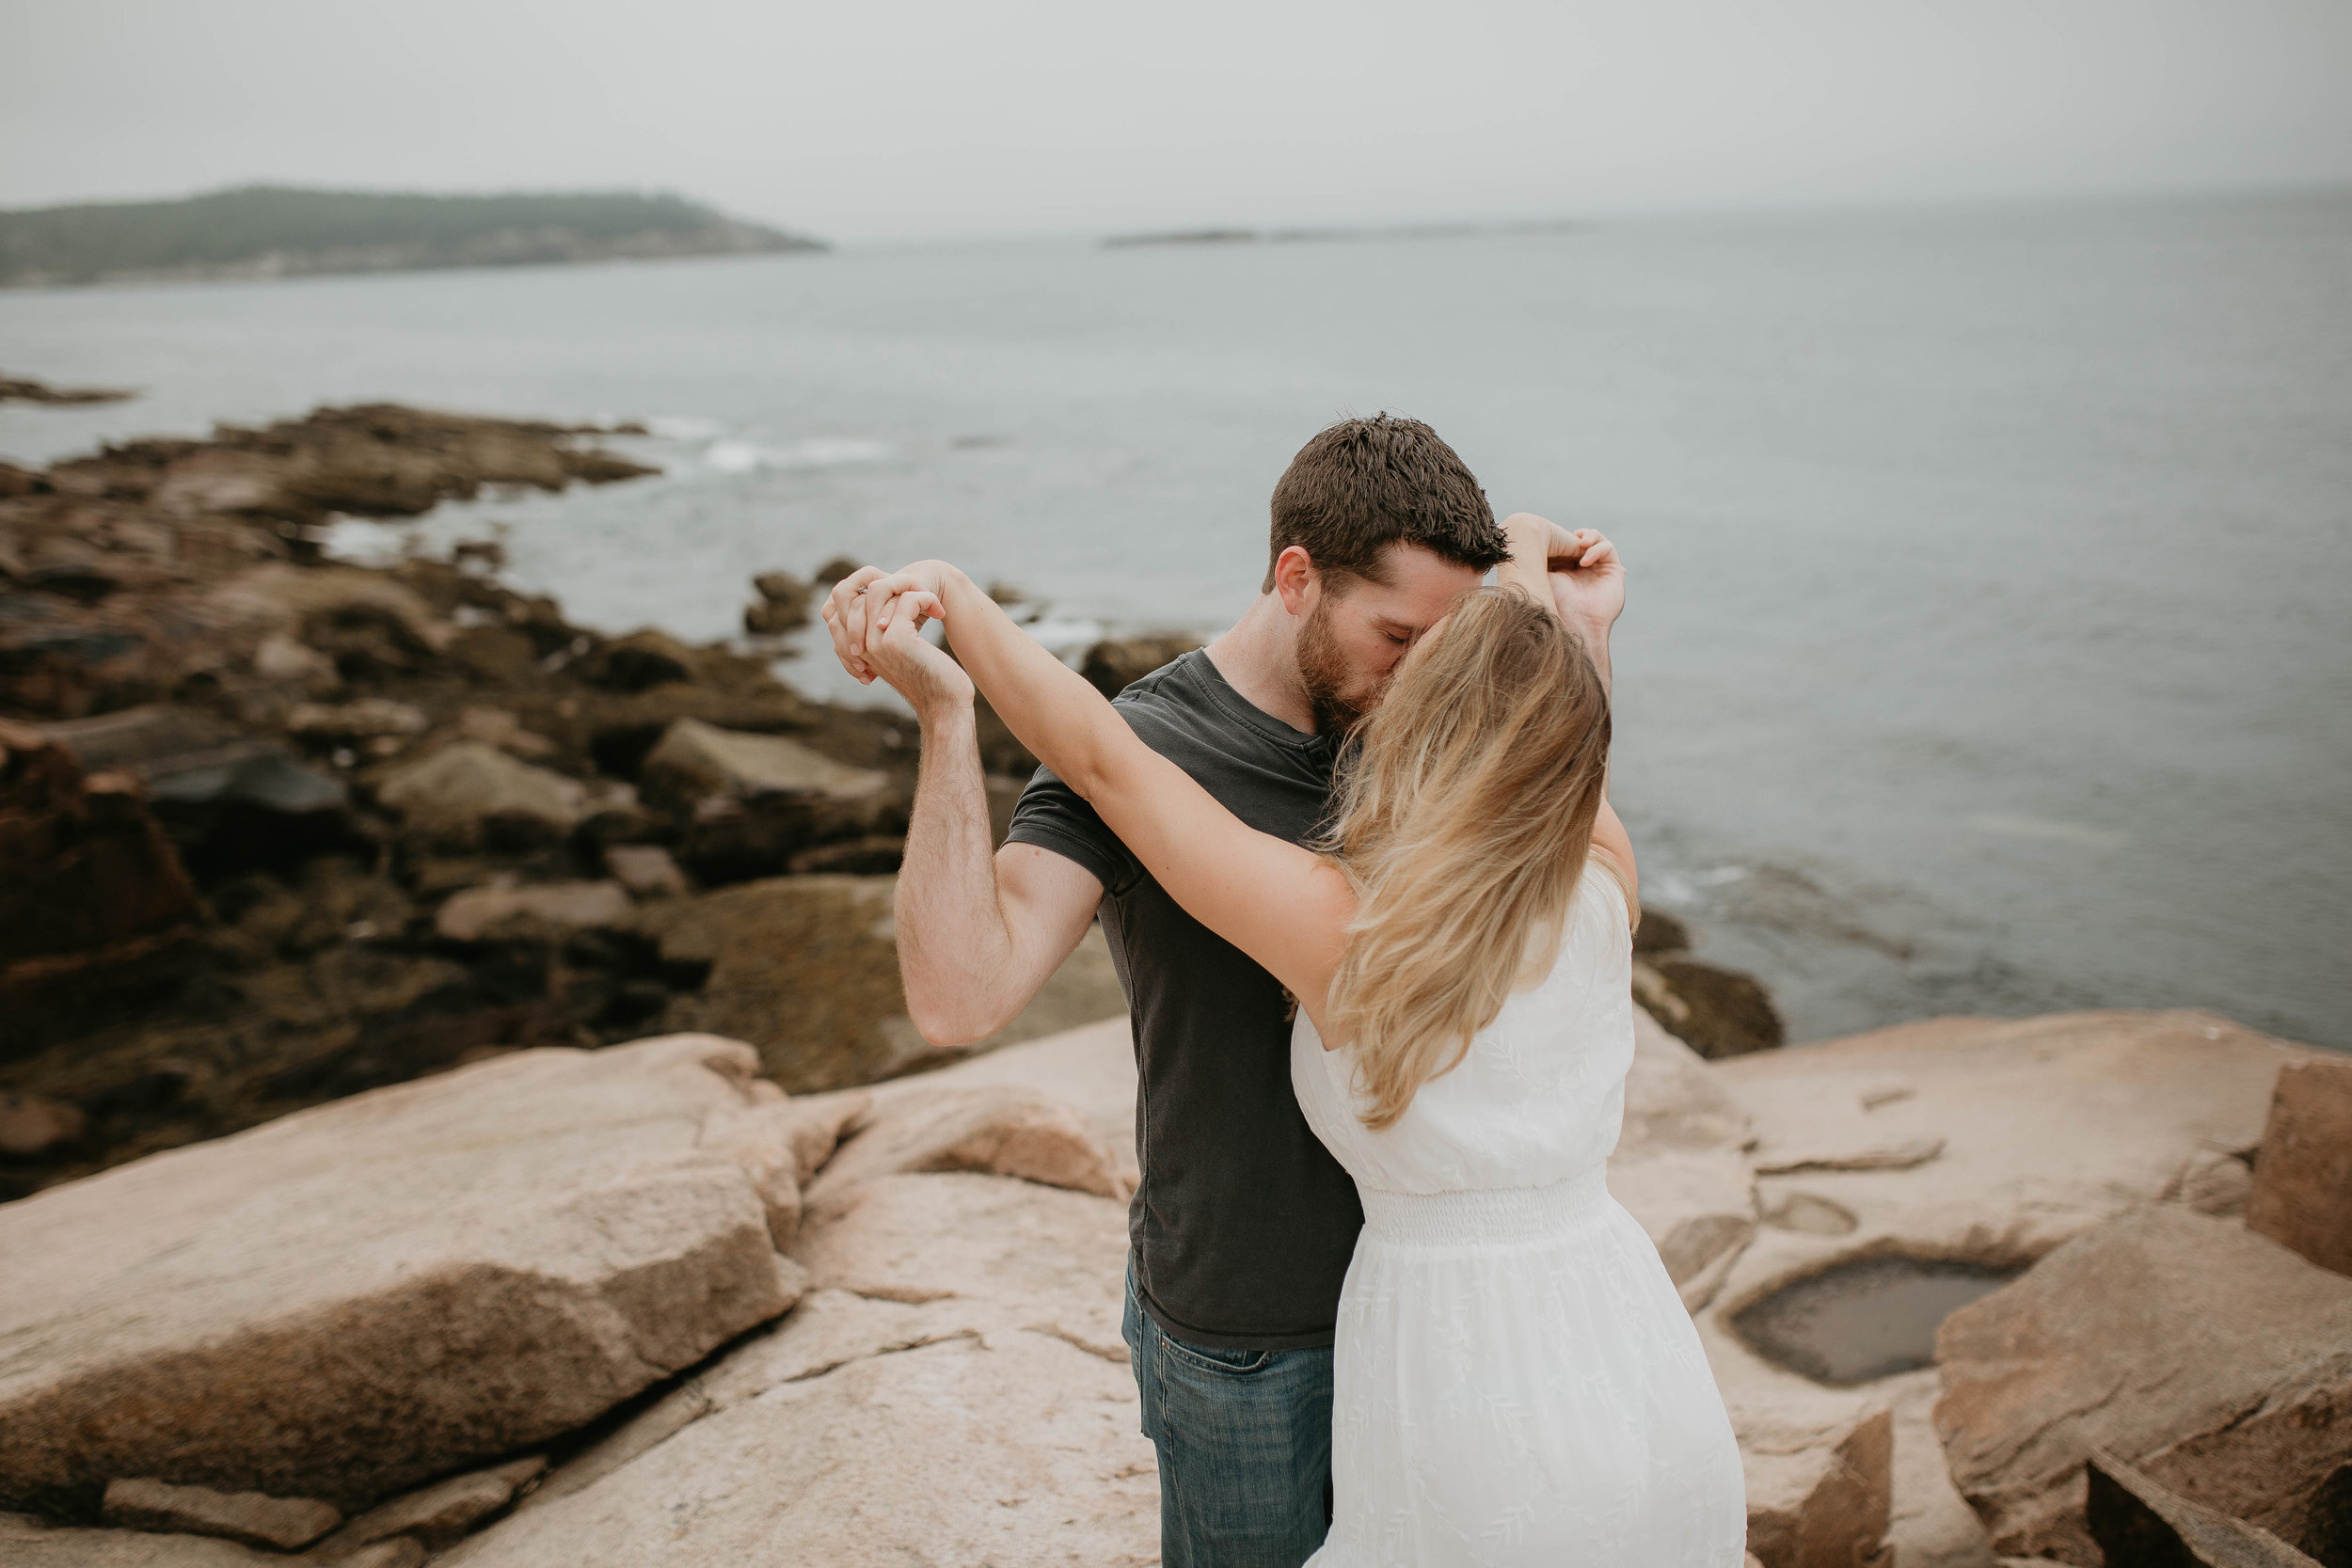 nicole-daacke-photography-acadia-national-park-adventurous-engagement-session-photos-otter-cliffs-forests-coastline-sand-beach-adventure-session-bar-harbor-mt-desert-island-elopement-fall-bass-harbor-lighthouse-wedding-maine-landscape-photographer-26.jpg